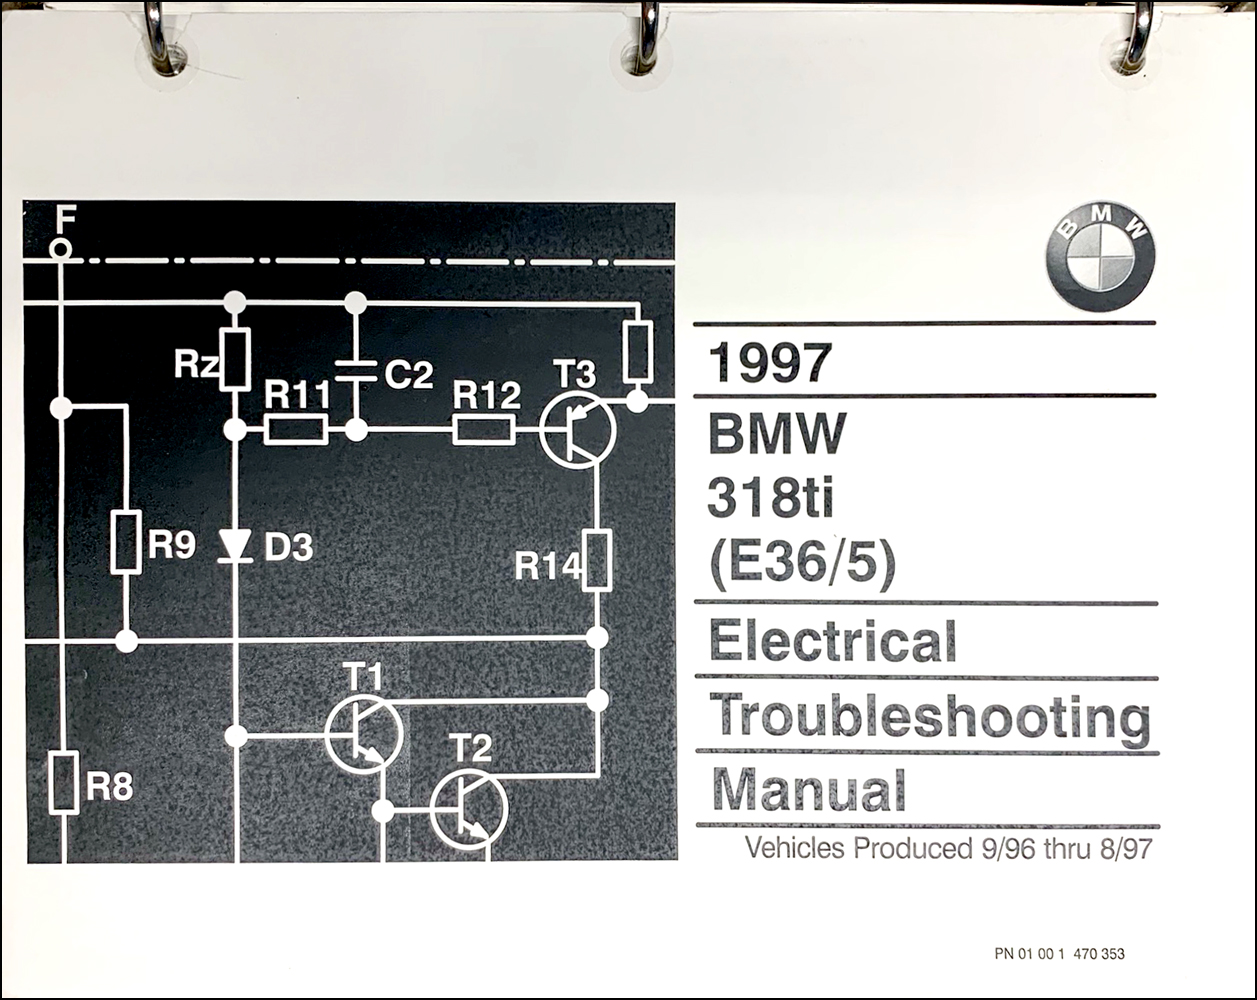 1997 BMW 318ti Electrical Troubleshooting Manual Original Second Edition